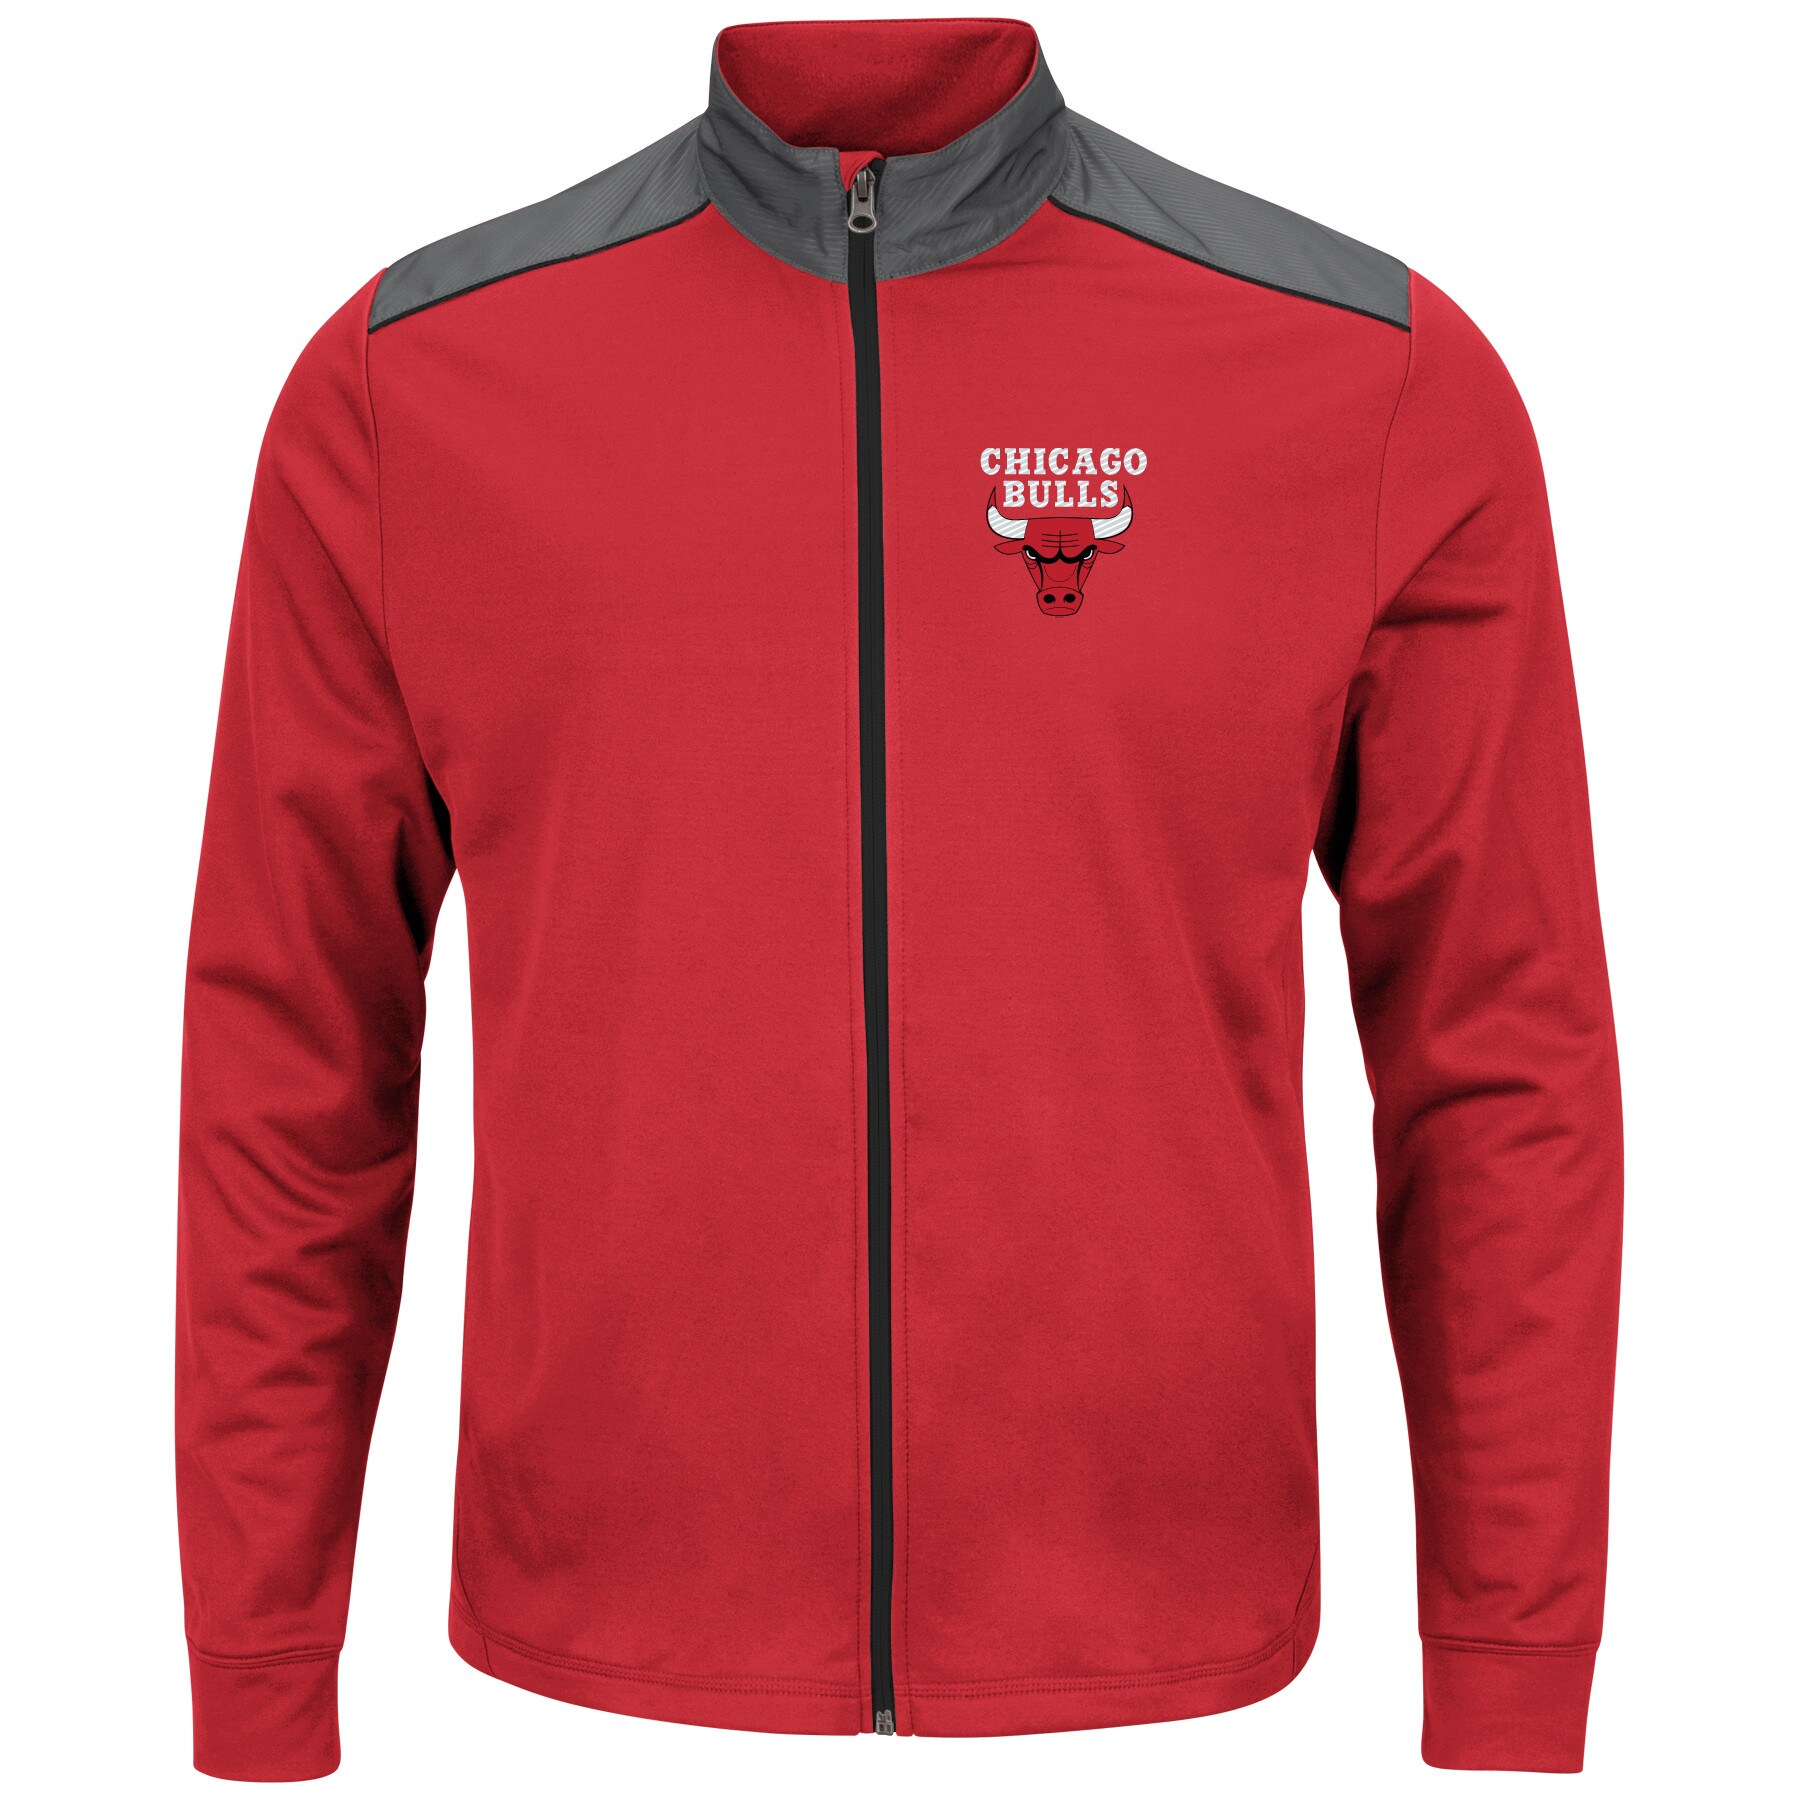 Chicago Bulls Majestic Fast or Last Full-Zip Jacket - Red